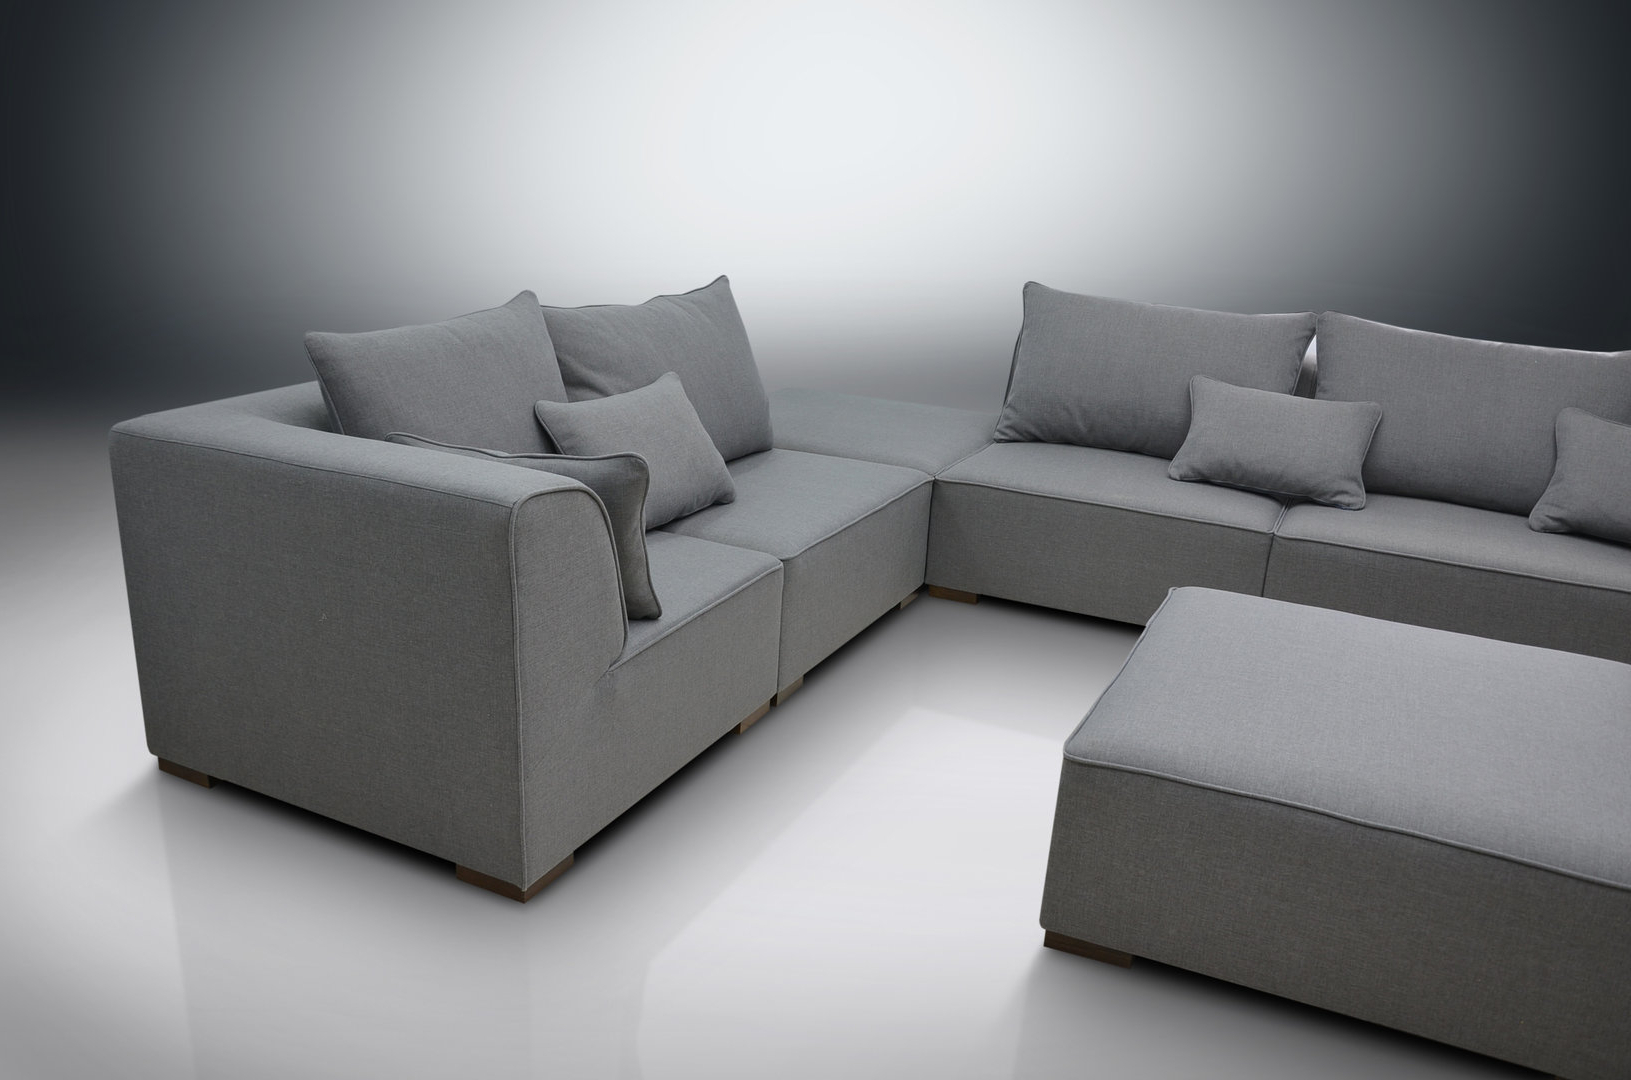 Modular Sofa Primo, 2Xcorners, 3Xchairs, 2Xfootstools For Well Known Dream Navy 3 Piece Modular Sofas (View 12 of 15)